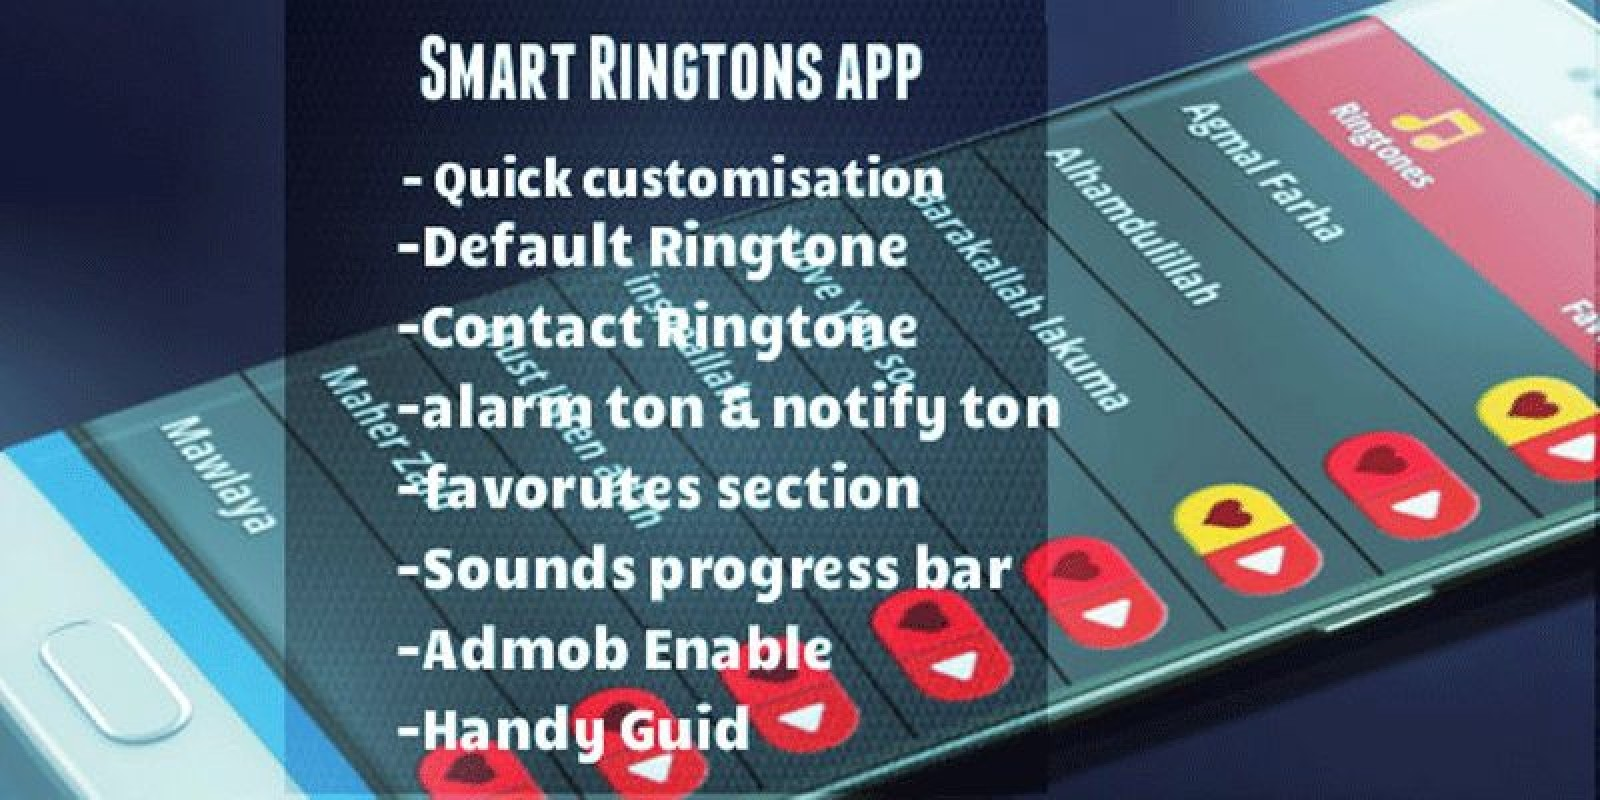 Smart Ringtone App Android Source Code Codester